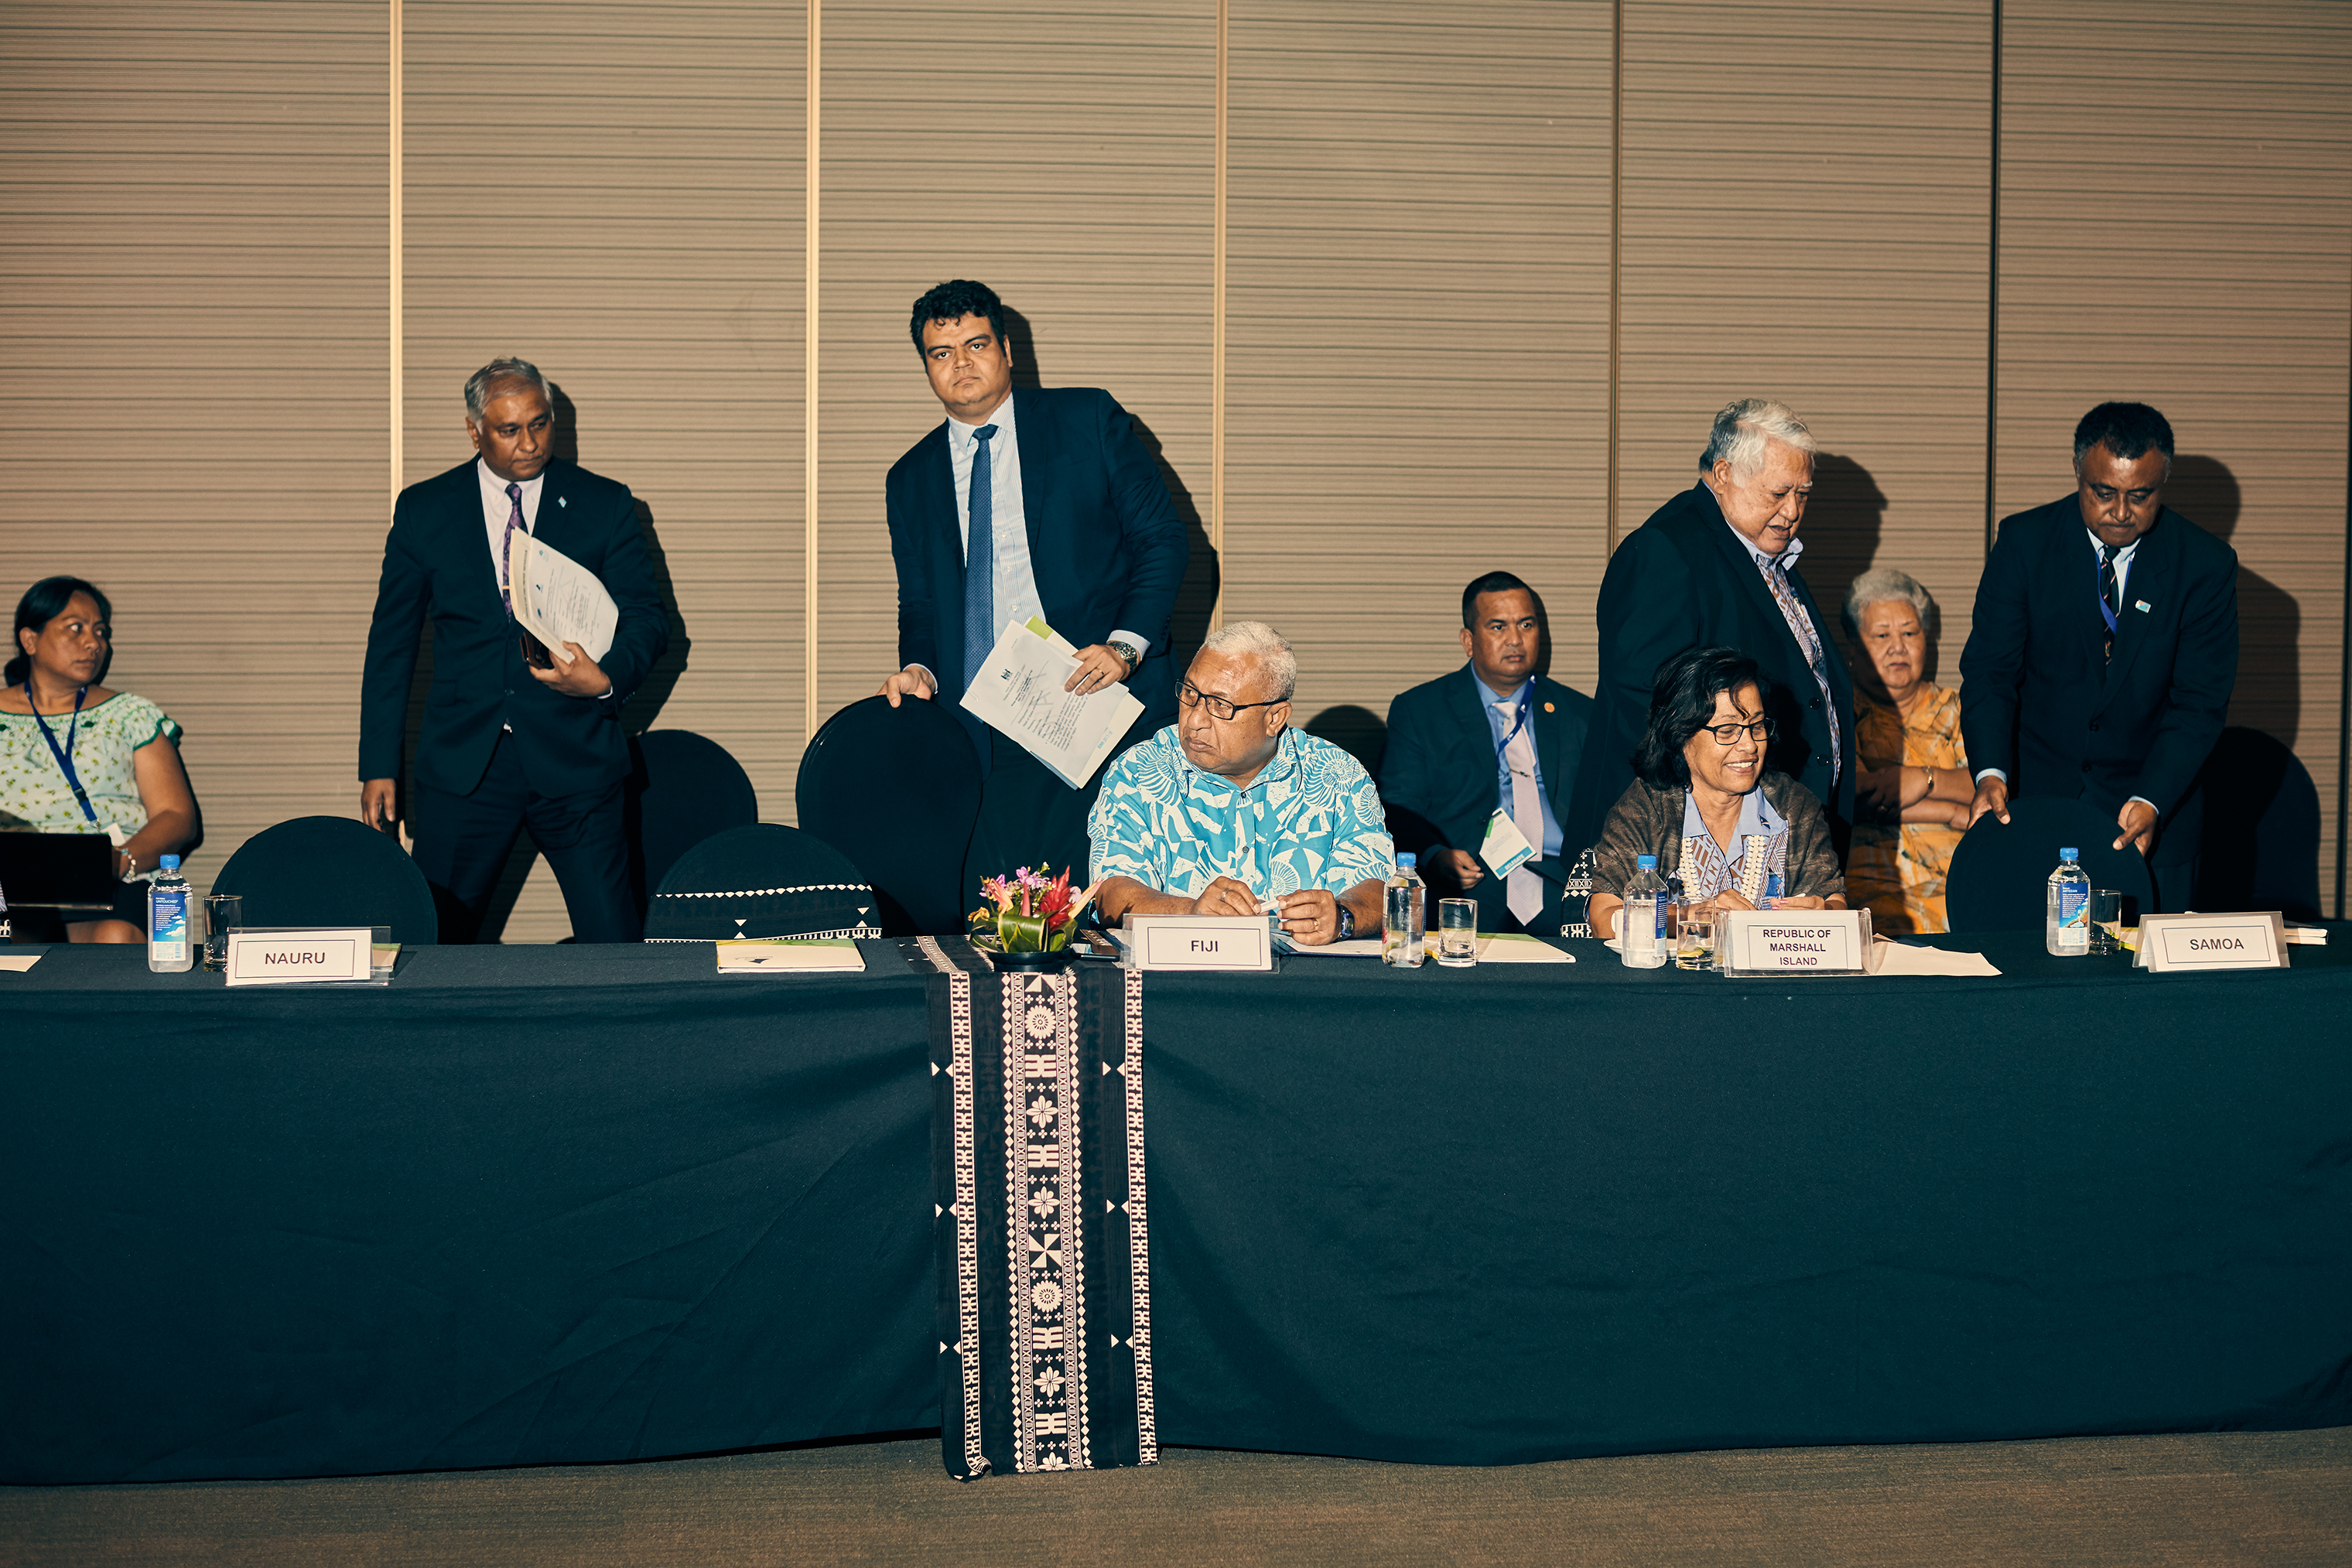 Pacific leaders meet to discuss their climate agenda.